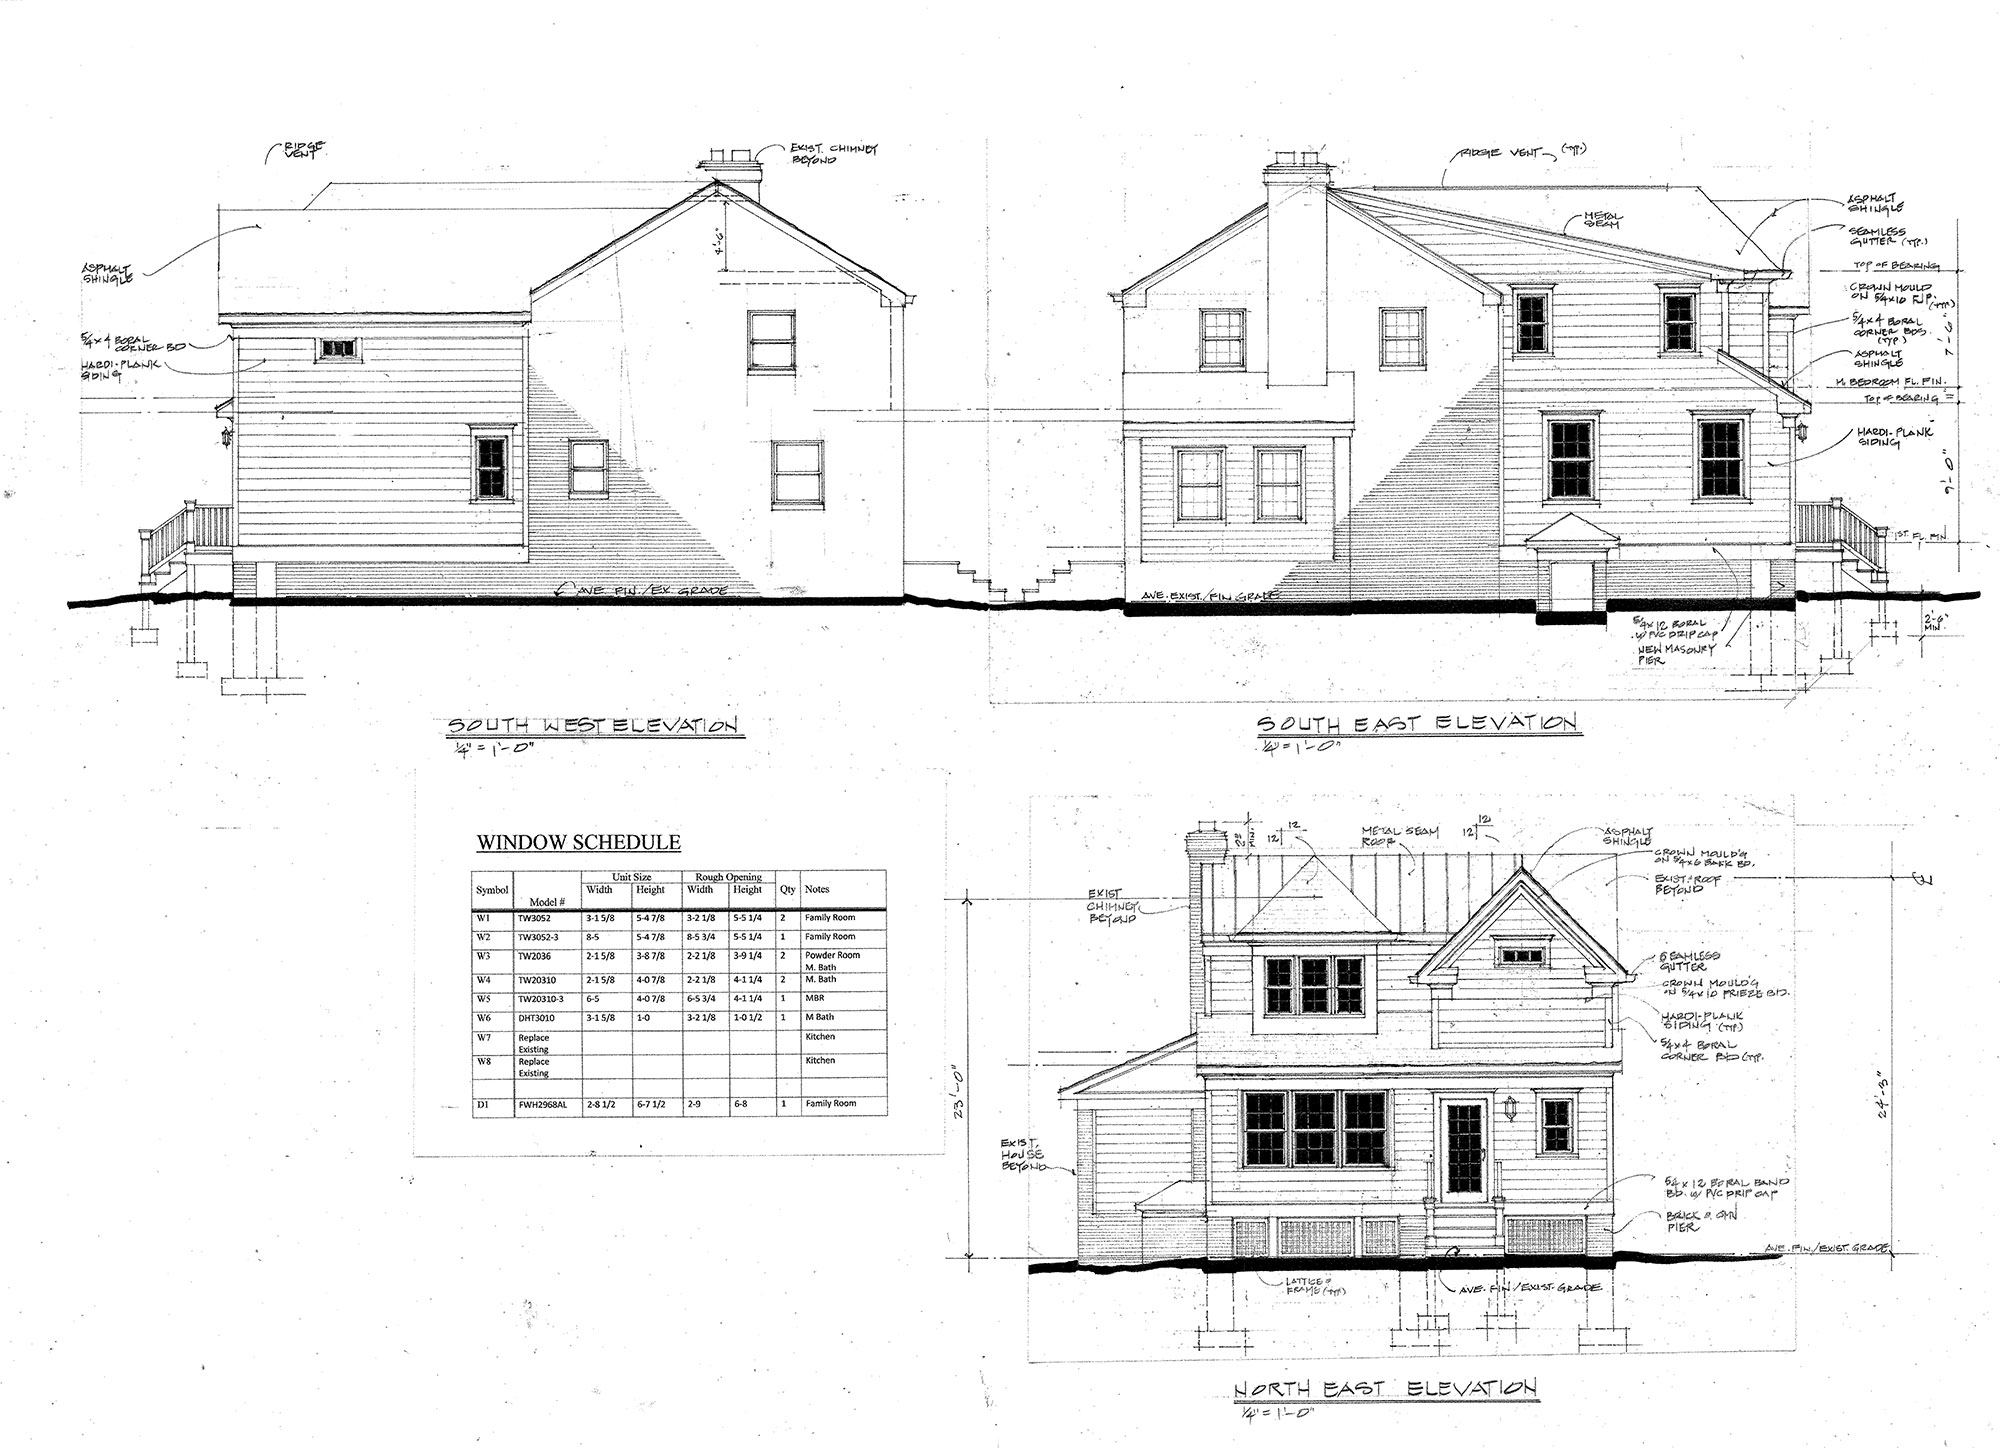 Elevation drawings for Alexandria home addition